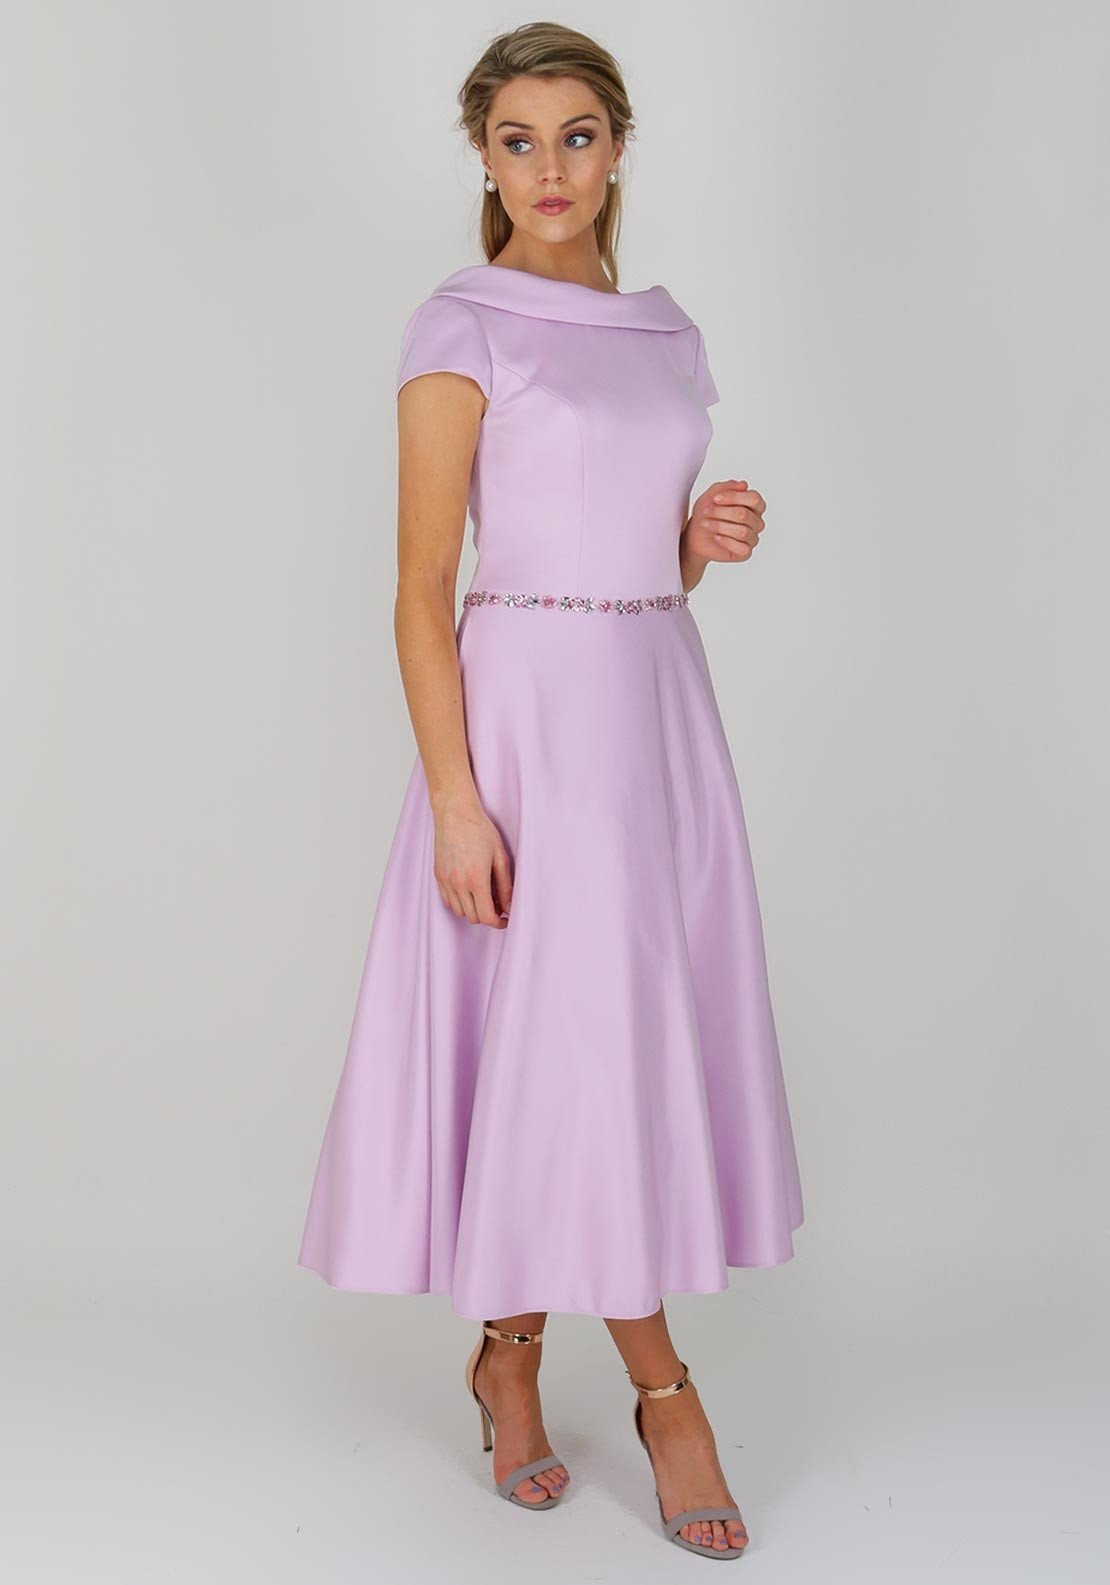 shoes for cheap release date sale uk Ronald Joyce Occasions Flared Midi Dress, Lilac   McElhinneys